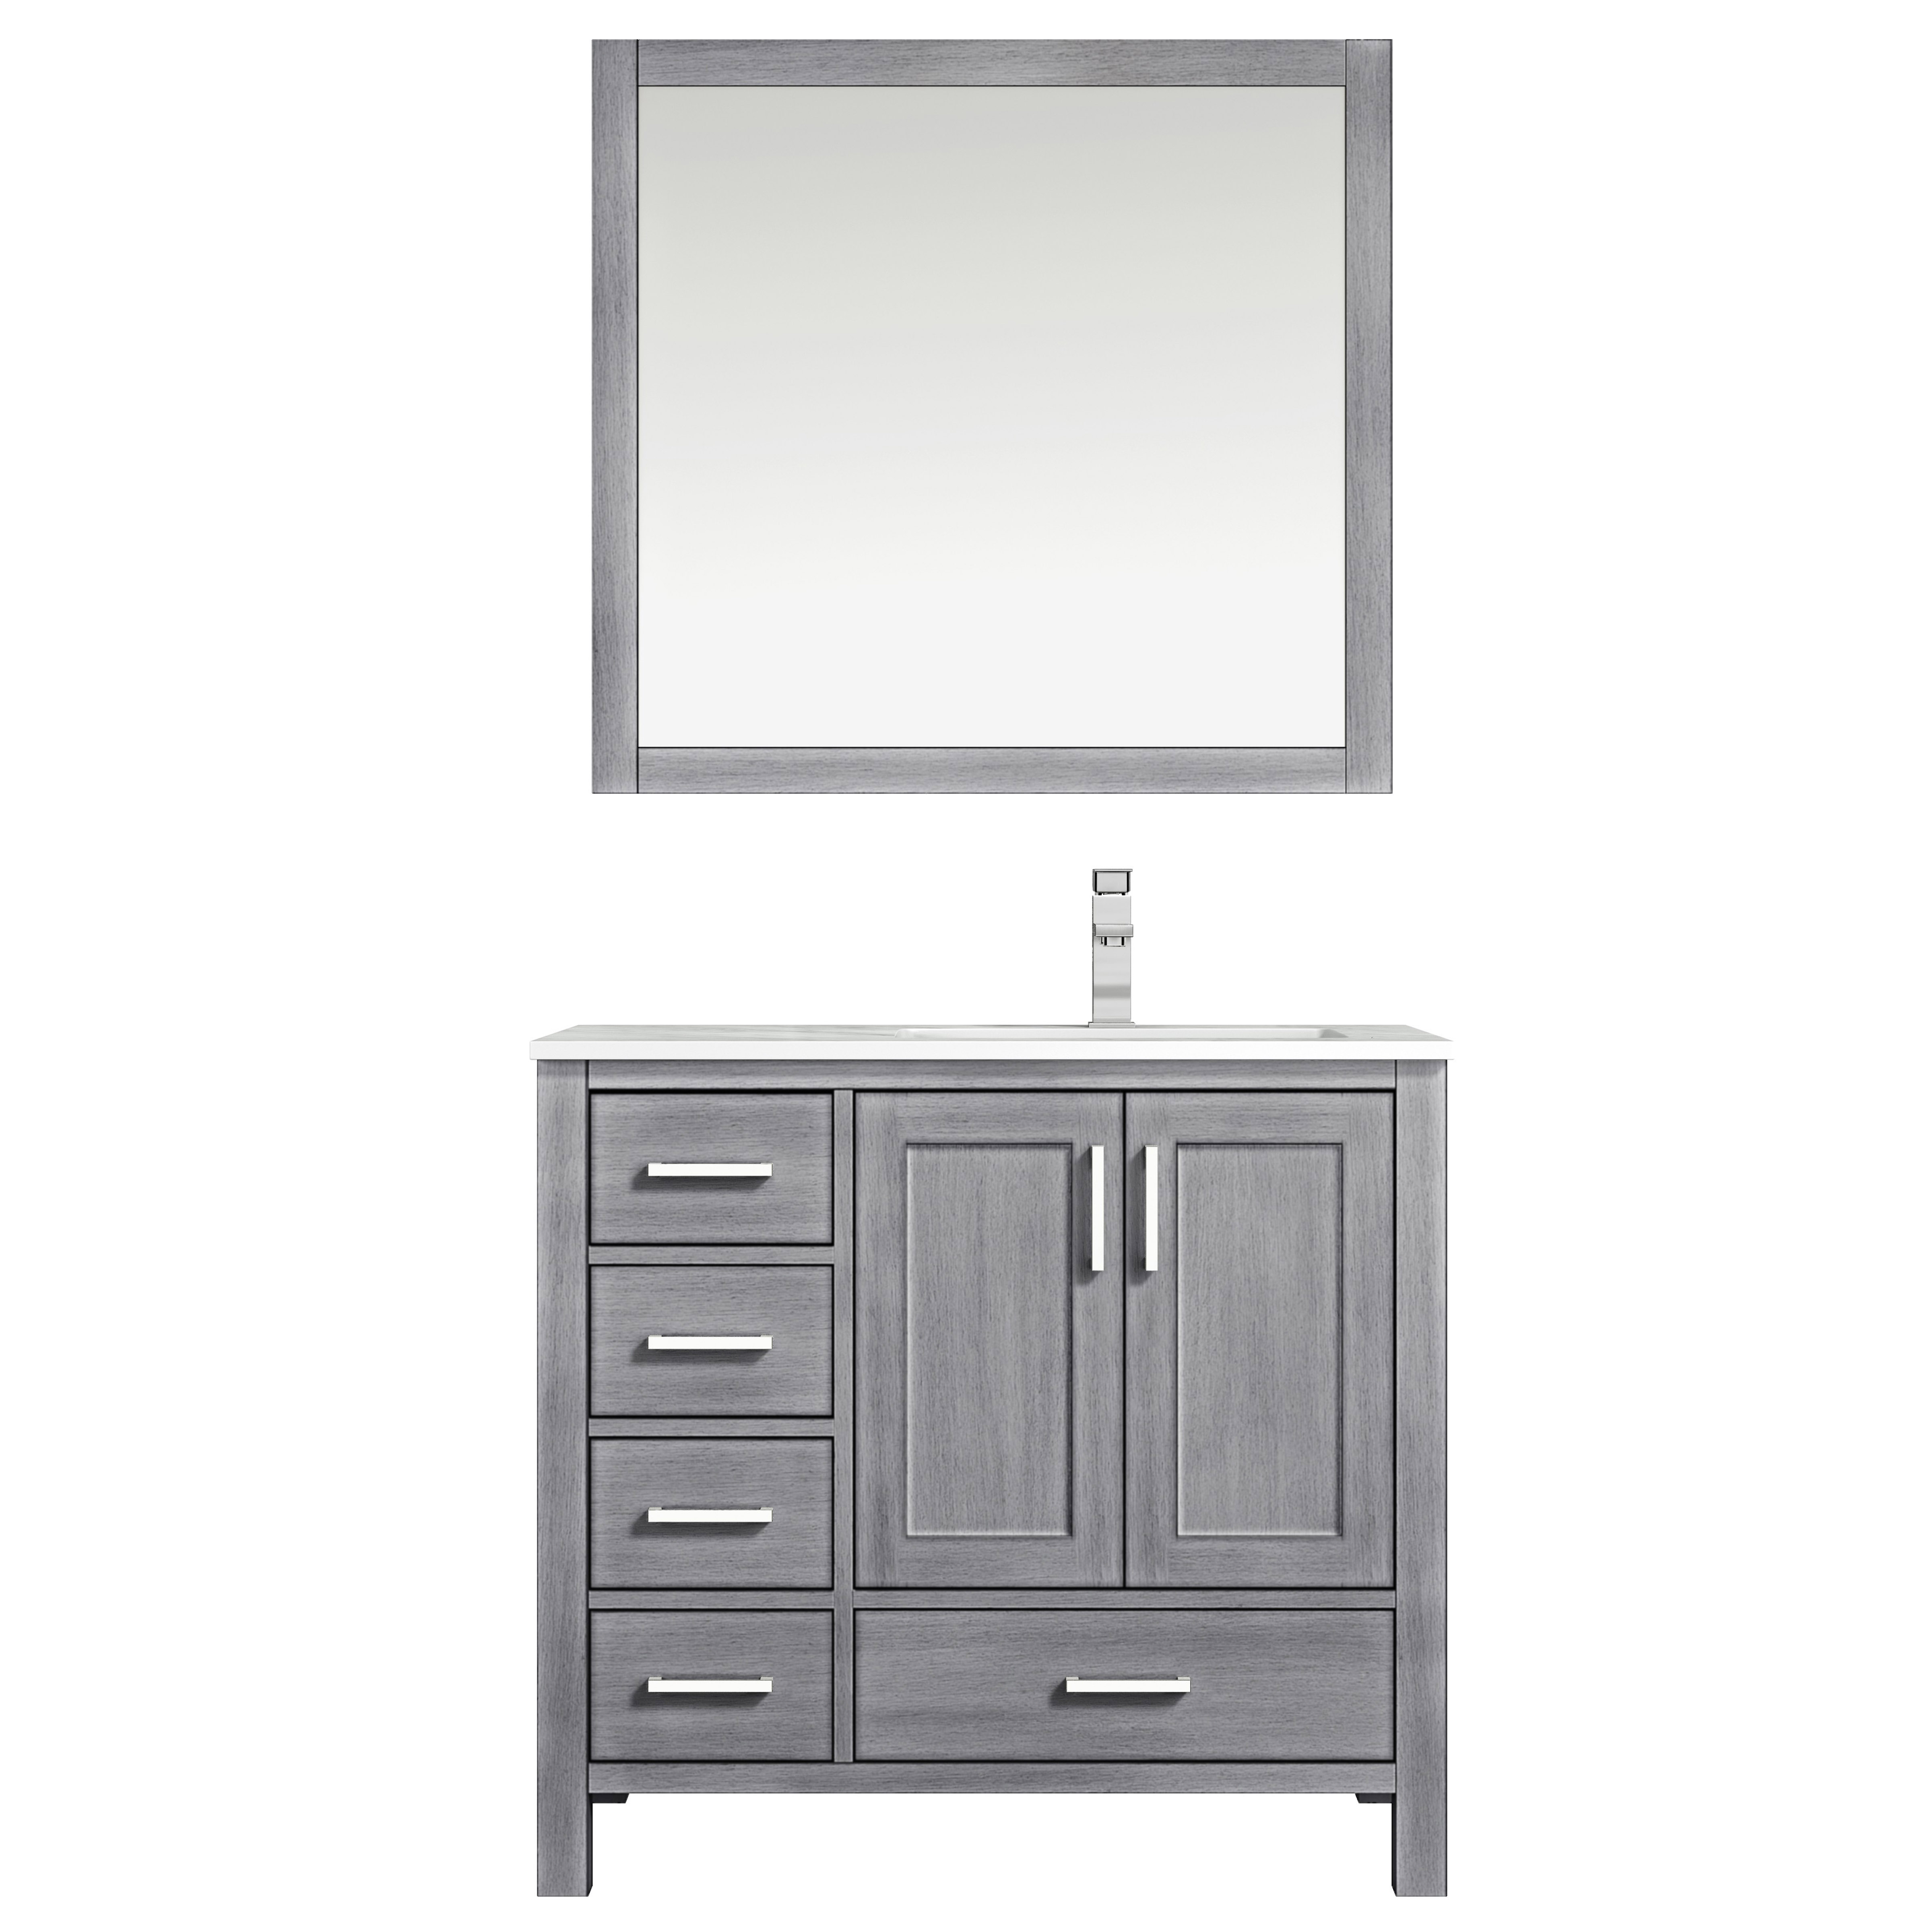 """36"""" Distressed Grey Vanity Cabinet Only - Right Version with Countertop and Mirror Options"""